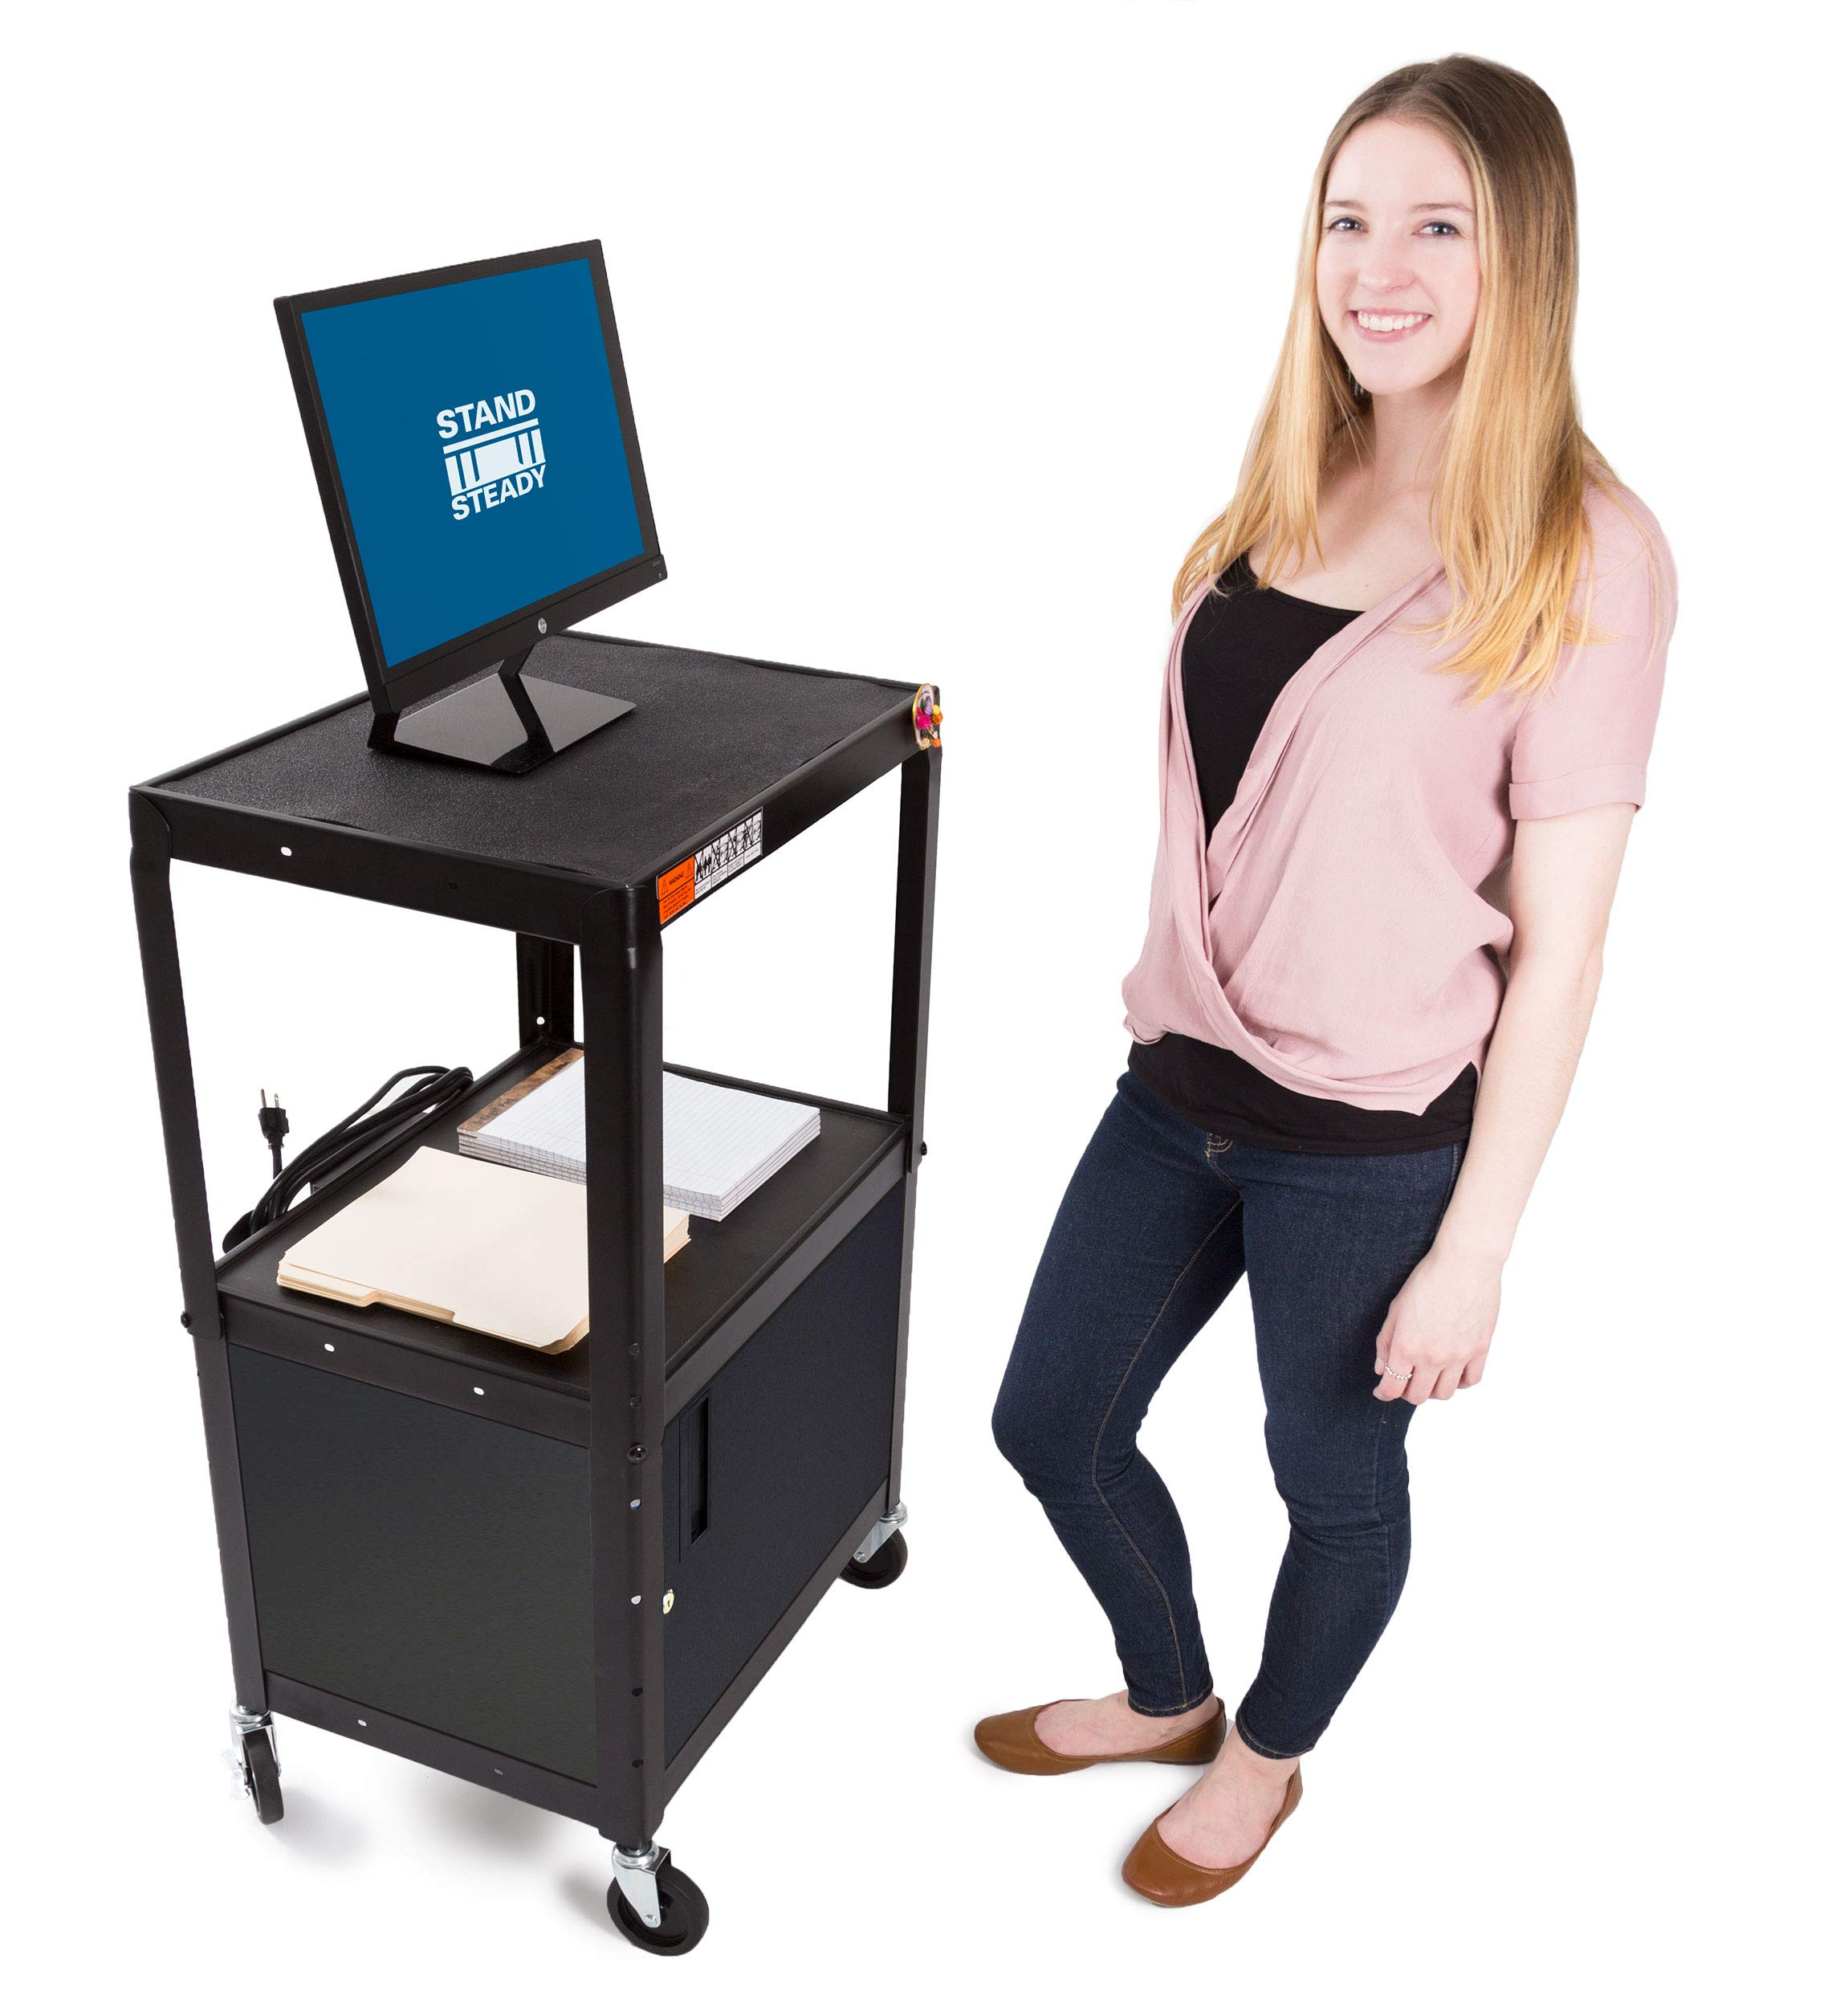 Line Leader AV Cart w/Locking Cabinet | Height Adjustable Utility Cart | Includes Power Strip & Cord Management | Great for Offices, Classrooms, Libraries & More! (Black / 24'' x 18'')